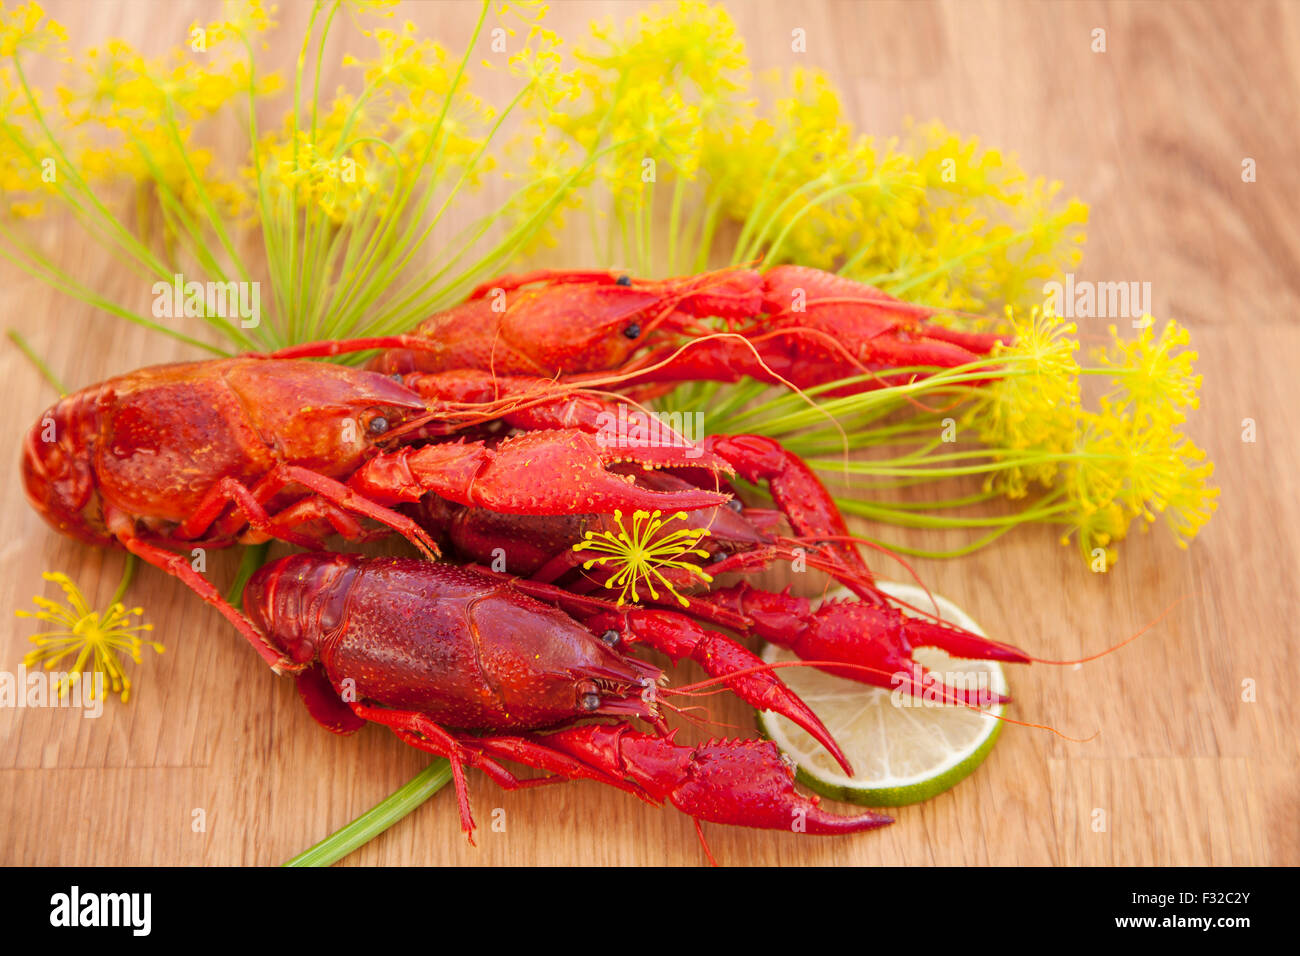 Image of fresh red crayfish. - Stock Image